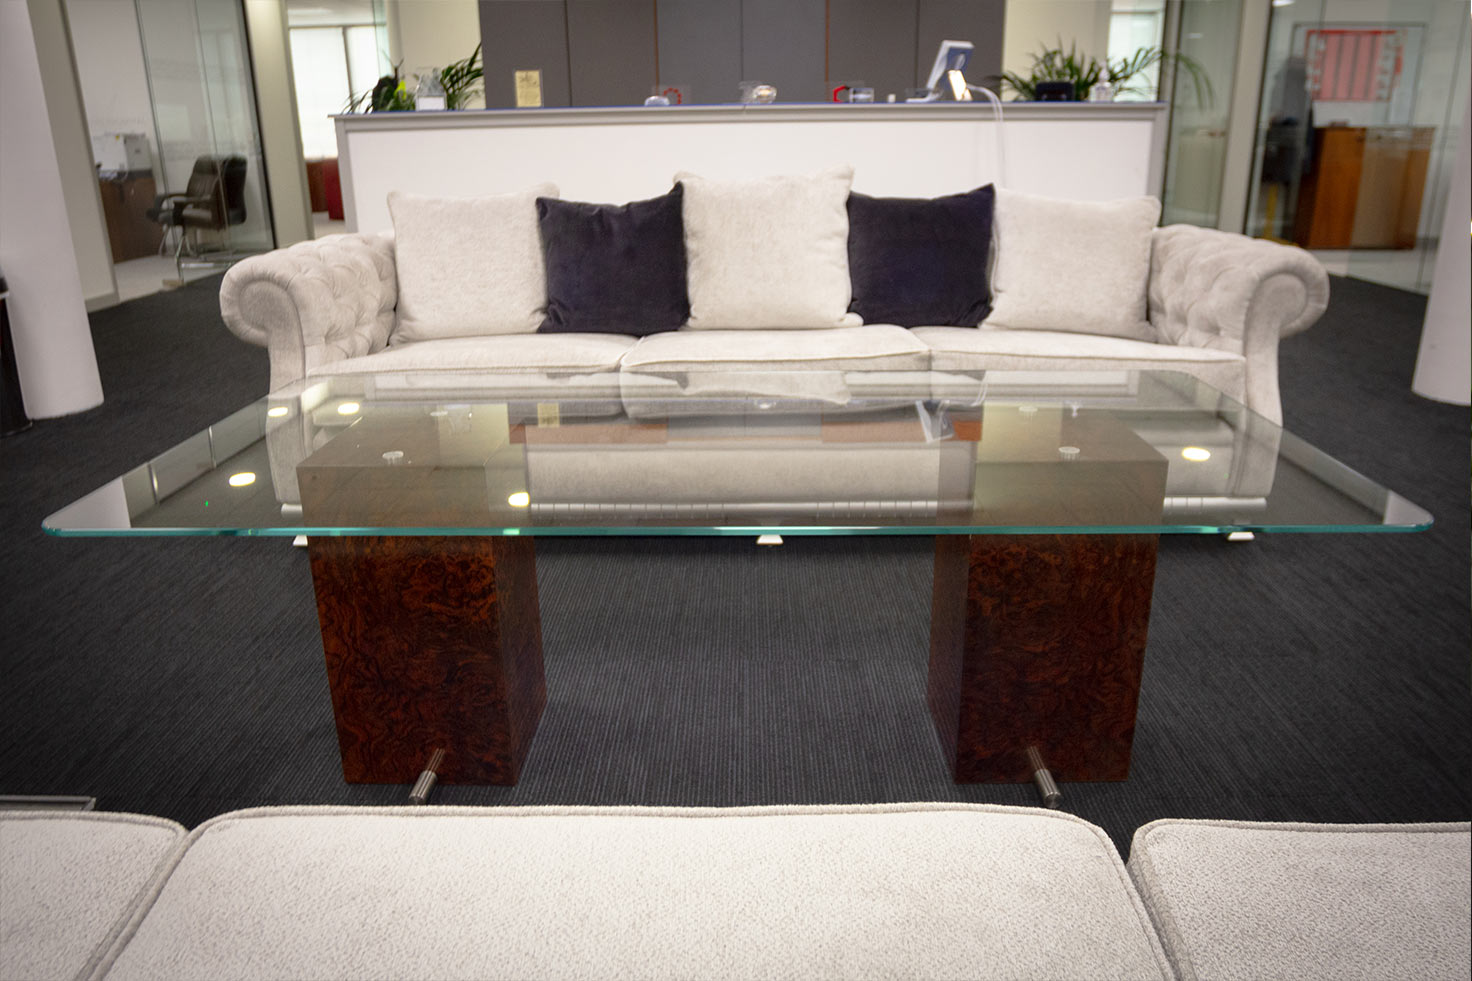 Custom glass table at Clyde Blowers Capital Ltd - Designed and Installed by Jack Hyams